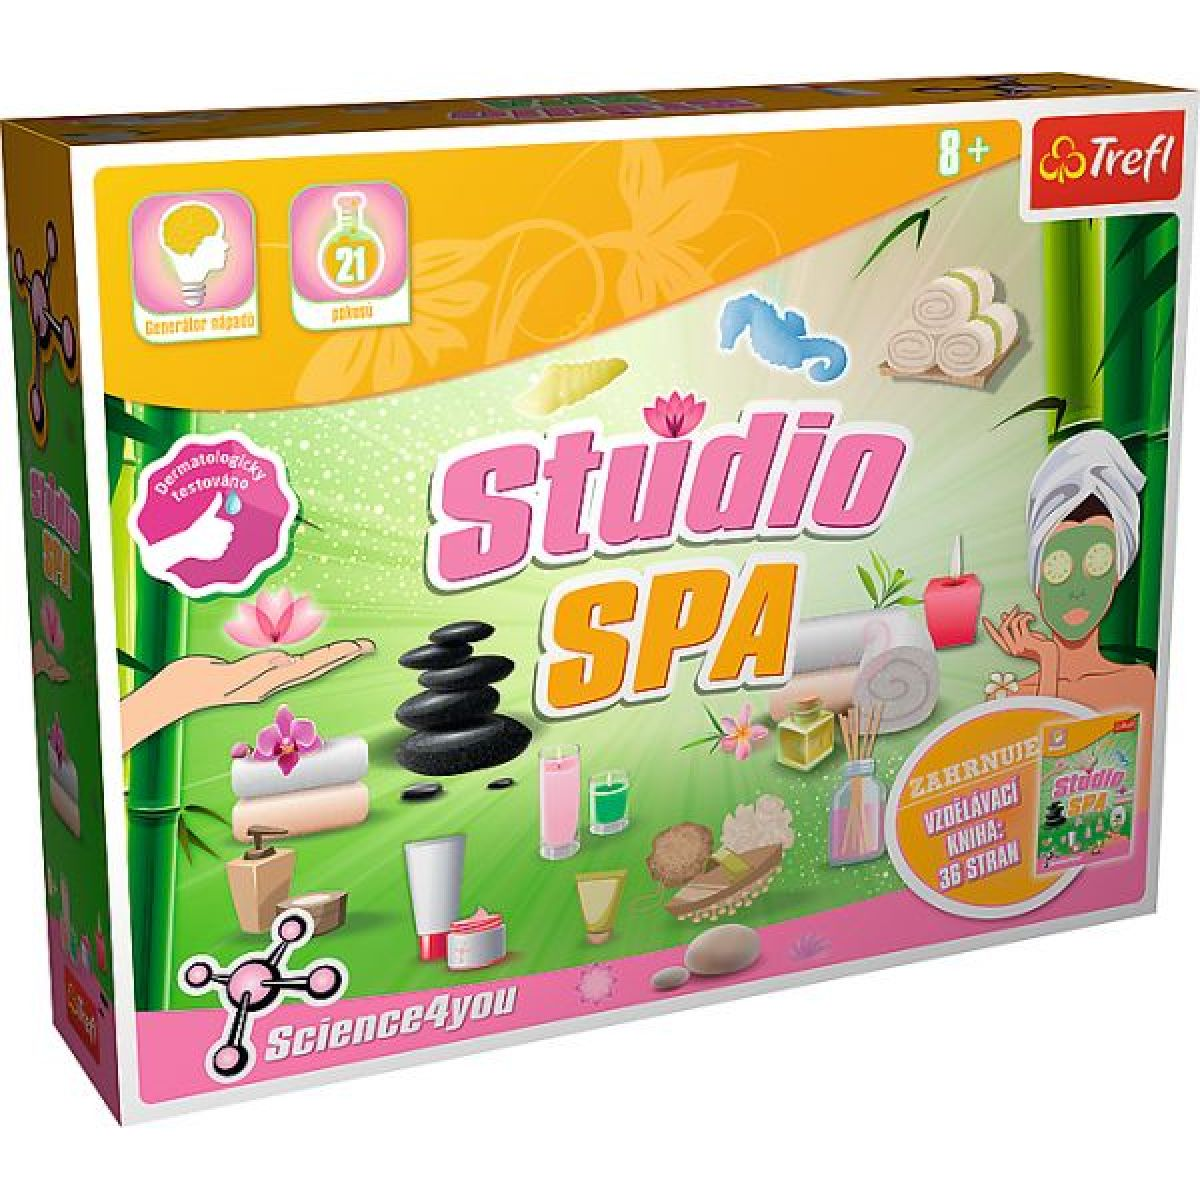 Trefl Studio Spa Science 4 you